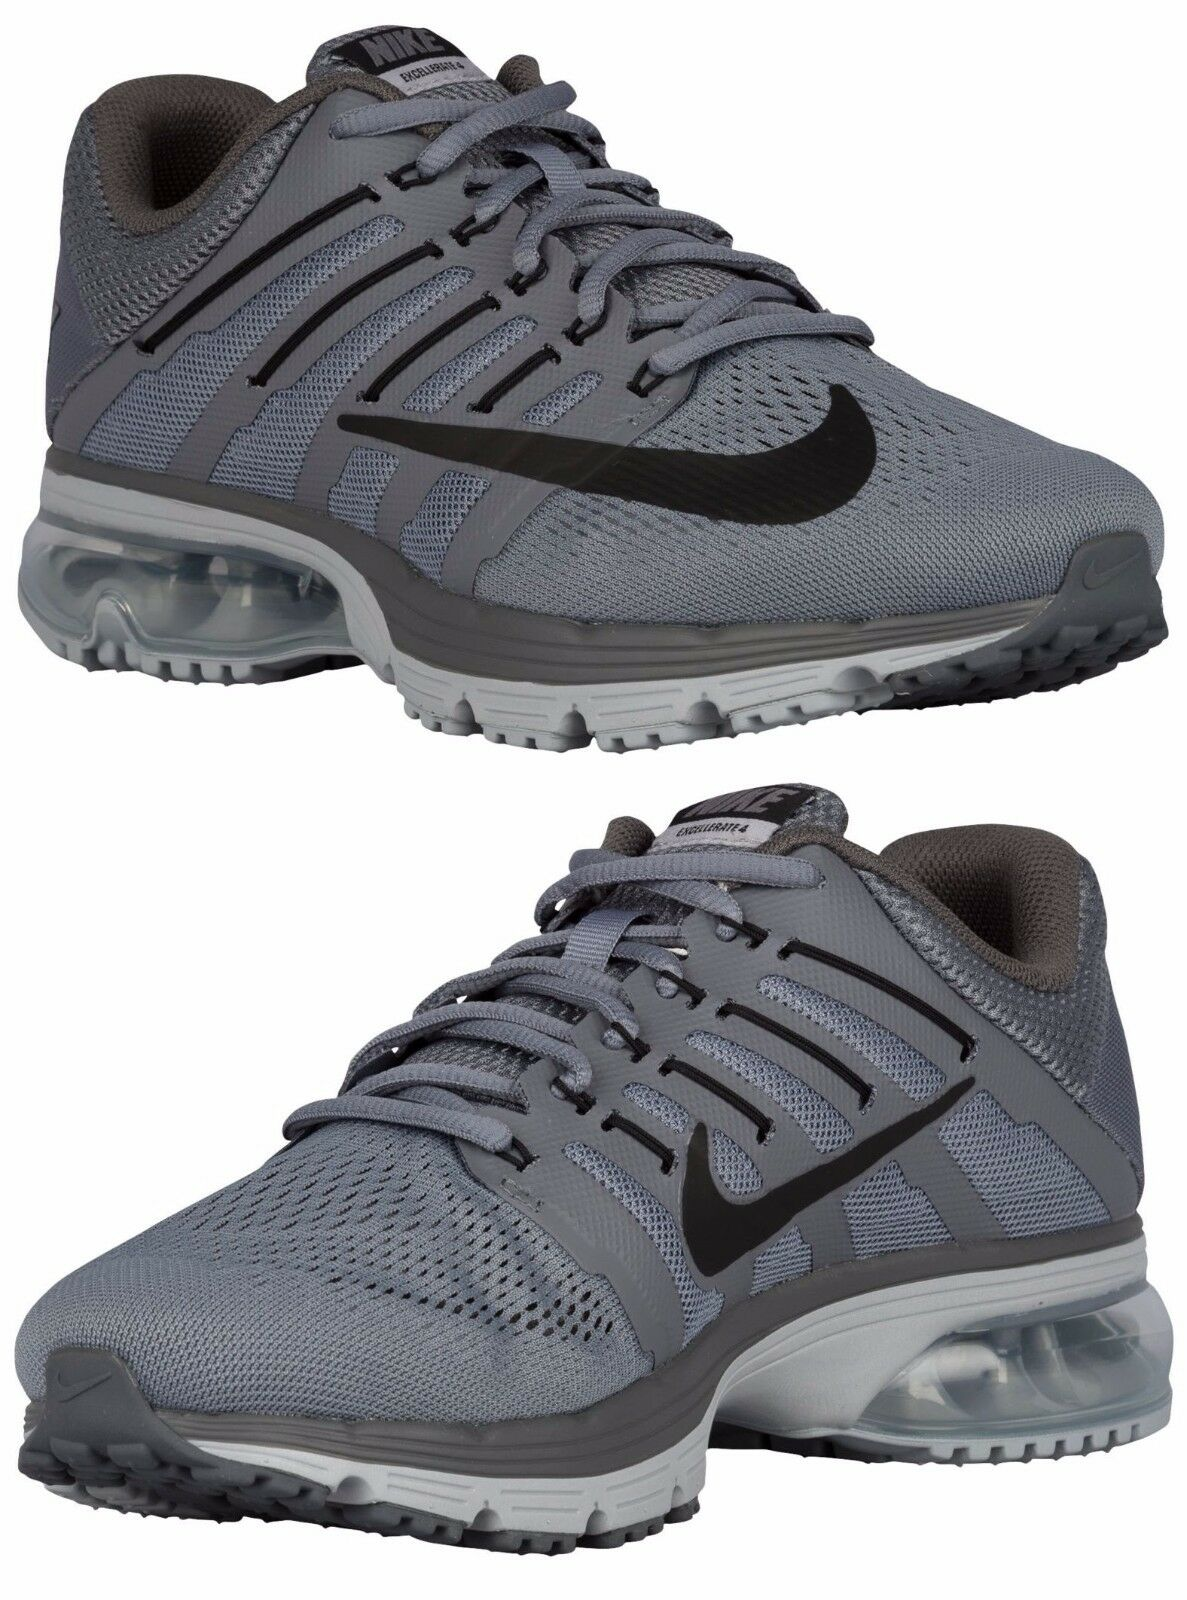 NIKE AIR MAX EXCELLERATE EXCELLERATE MAX 4 MEN's COOL GREY - WOLF GREY - BLACK - DARK GREY NEW b049eb